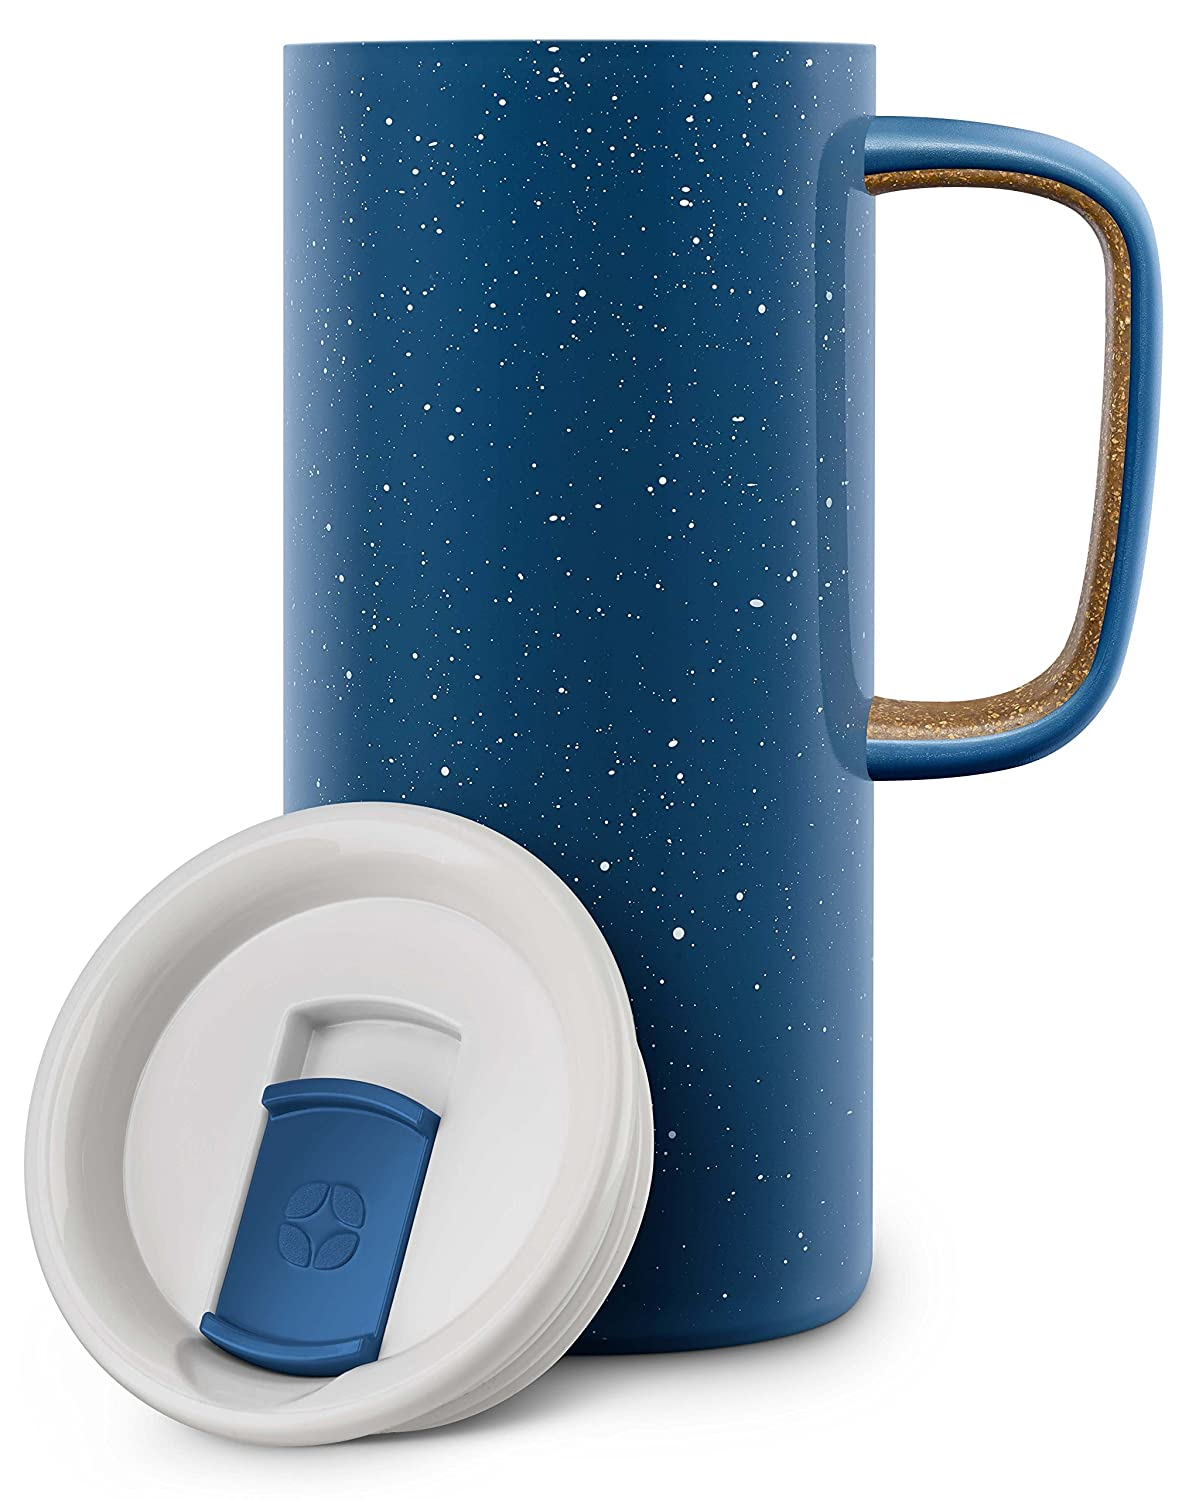 be3377ed9af Ello Campy Vacuum-Insulated Stainless Steel Travel Mug